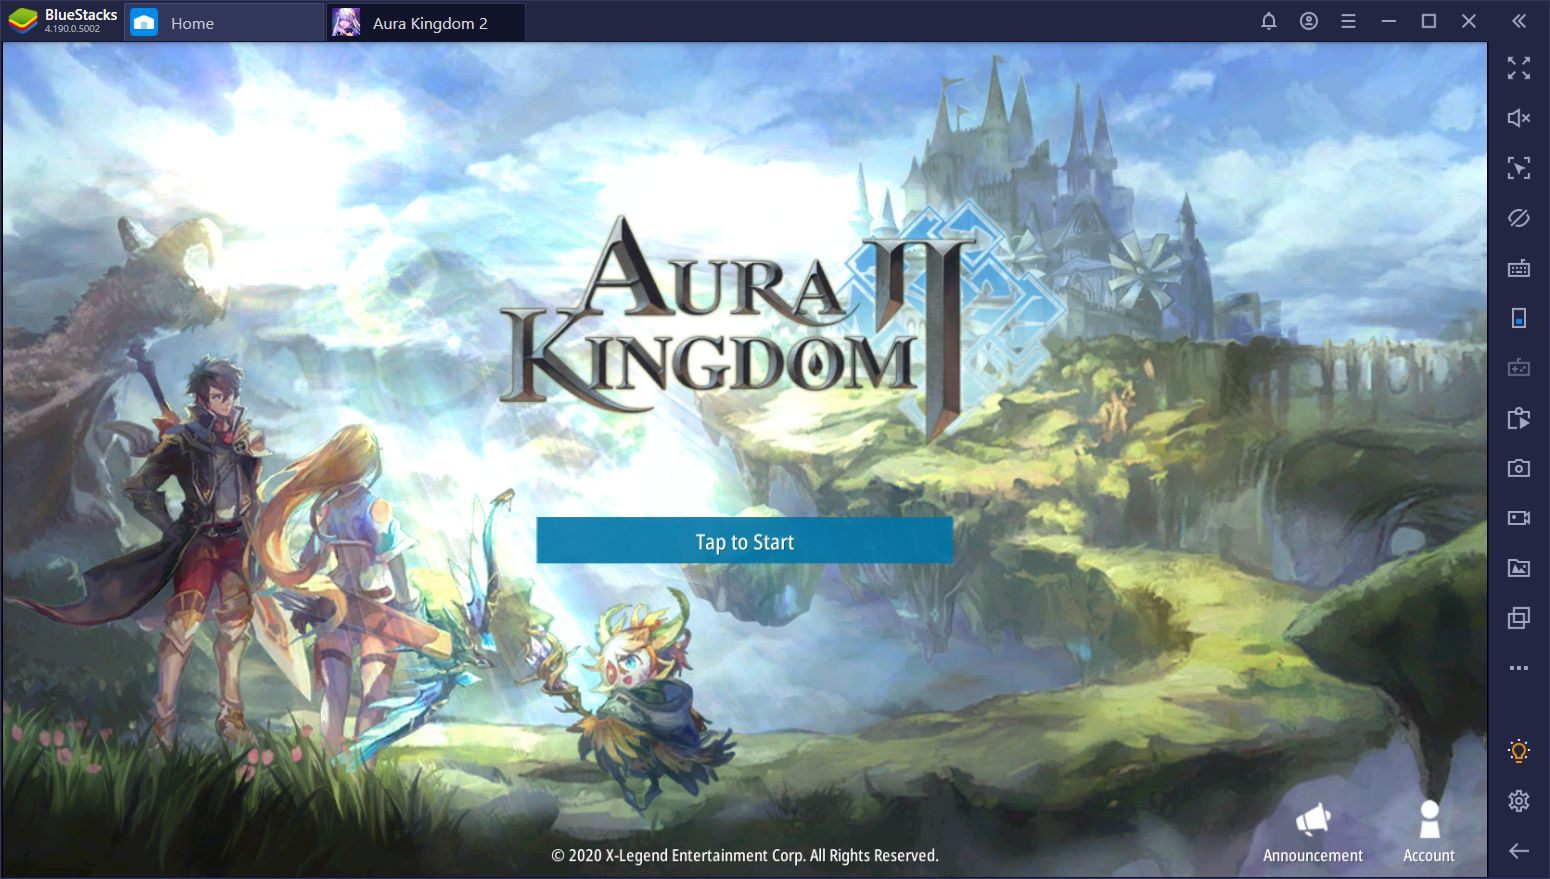 Aura Kingdom 2 on PC - Beginner's Guide for Getting Started in this Open-World MMORPG